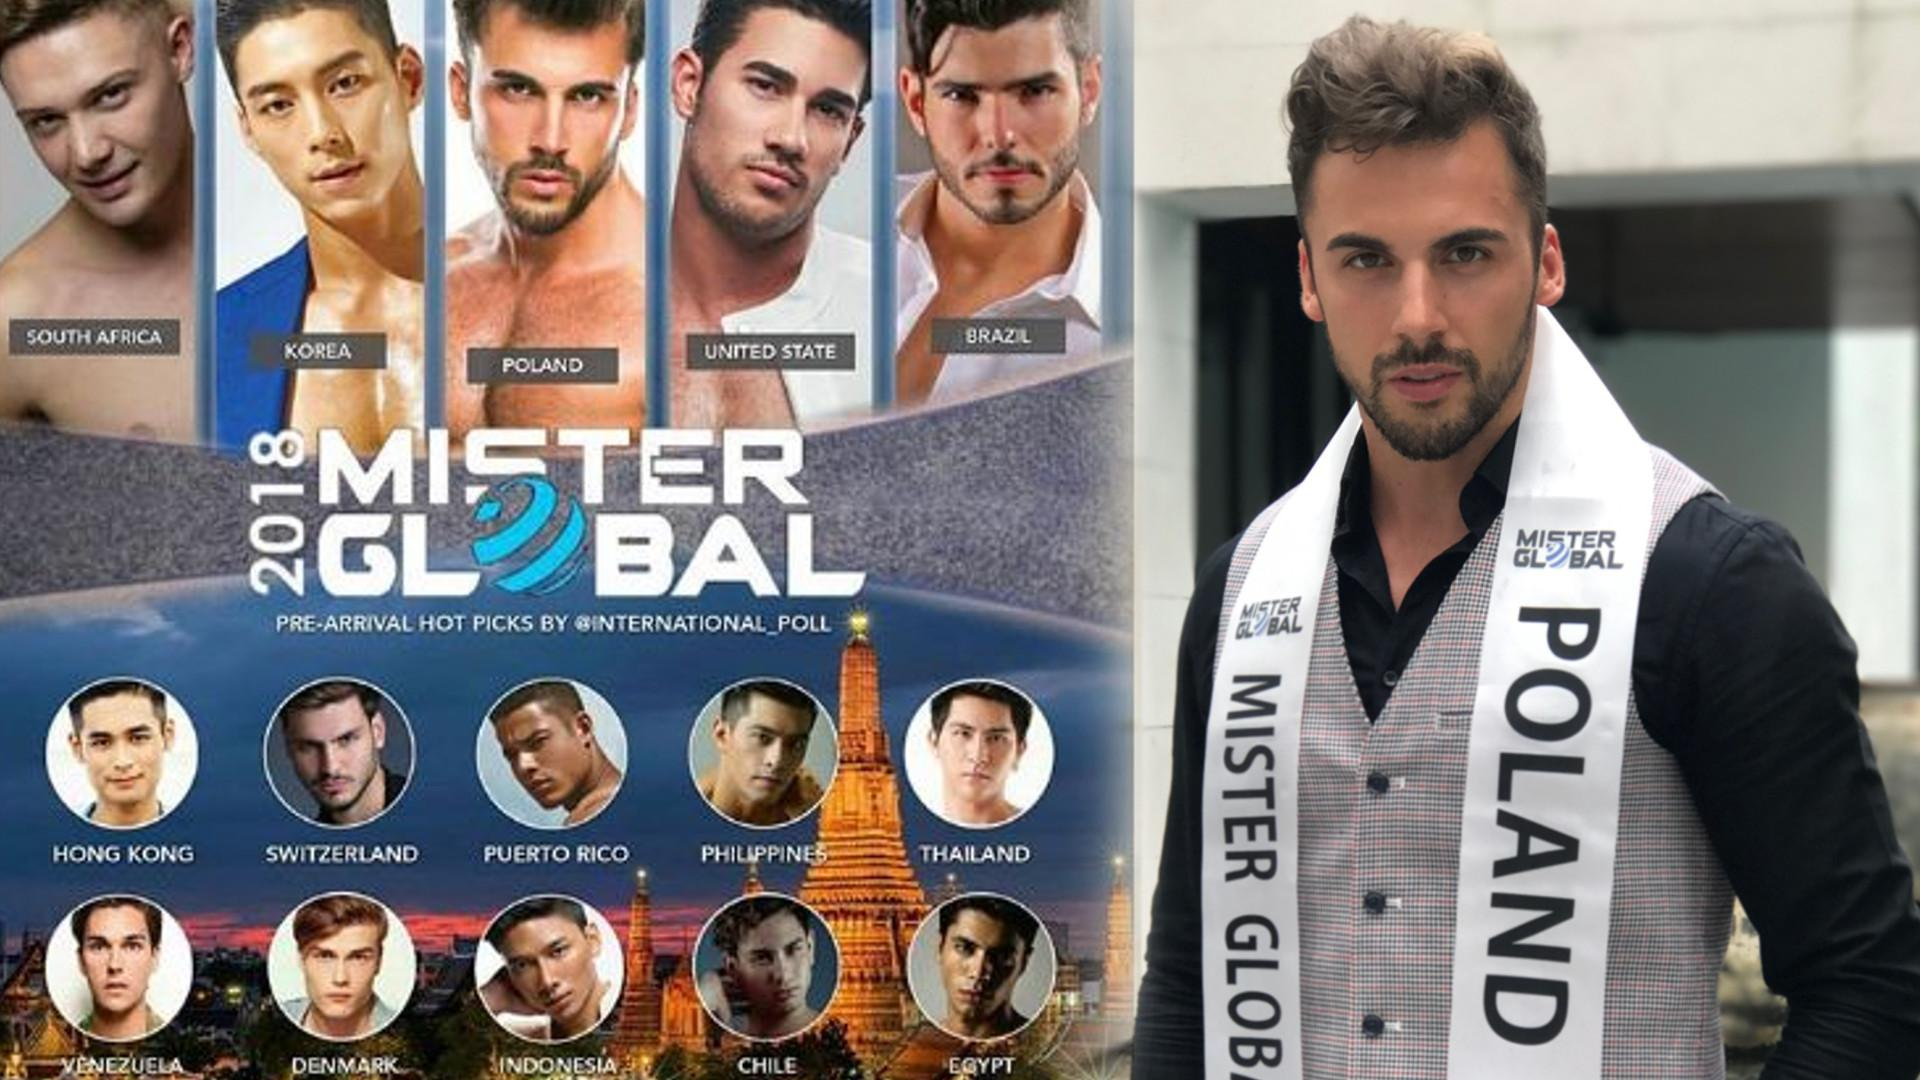 WOW! Jakub Kucner w TOP 5 konkursu MISTER GLOBAL!